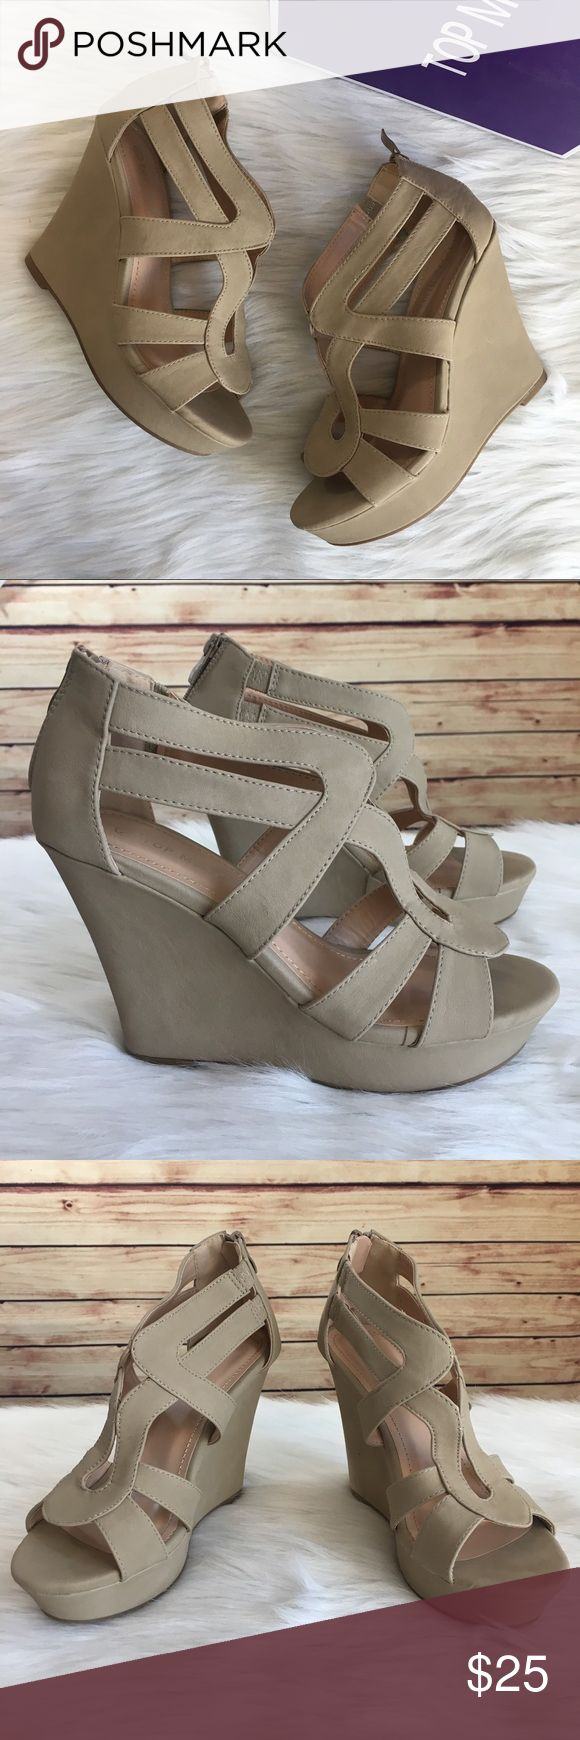 Top Moda beige wedges Brand new in box / Top Moda 'Lindy' wedges Size 7.5, fits true to size Back zipper closure  *Color may vary in diff lighting, color is a beige *Shoes show minor shelf wear, one has a tiny greyish black mark on the inside of the wedge  *Comes with shoebox & will be packaged in a usps shipping box.  ✨Build a bundle with all your likes and use the automatic bundle discount -or- make me a bundle offer✨ Top Moda Shoes Wedges